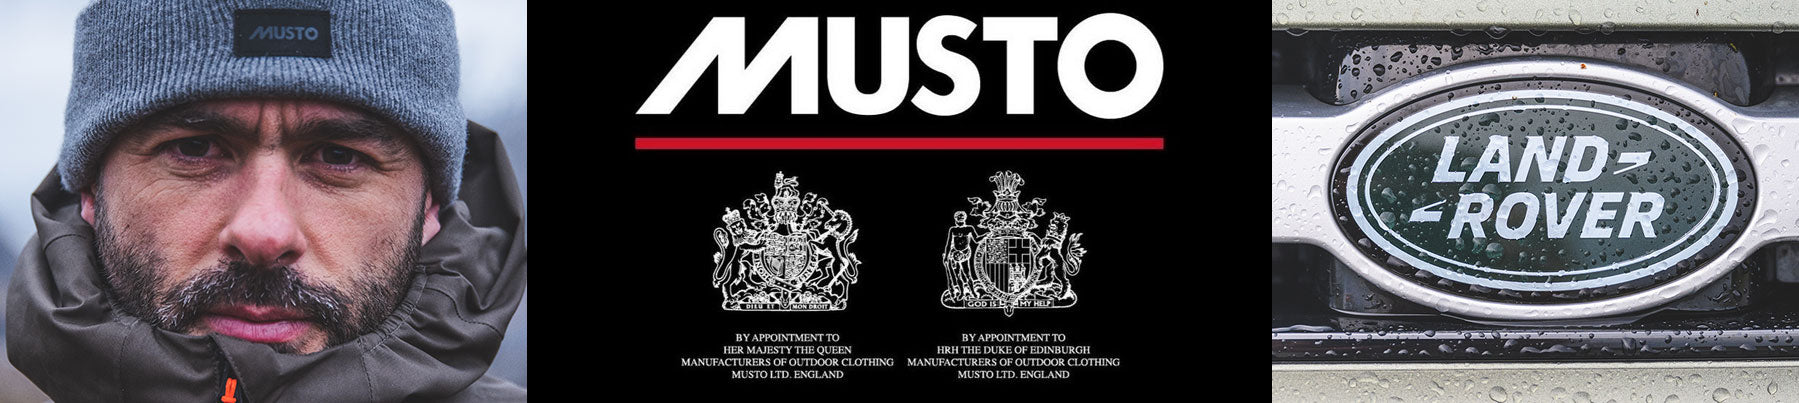 Musto Land Rover - THE ABOVE AND BEYOND COLLECTION